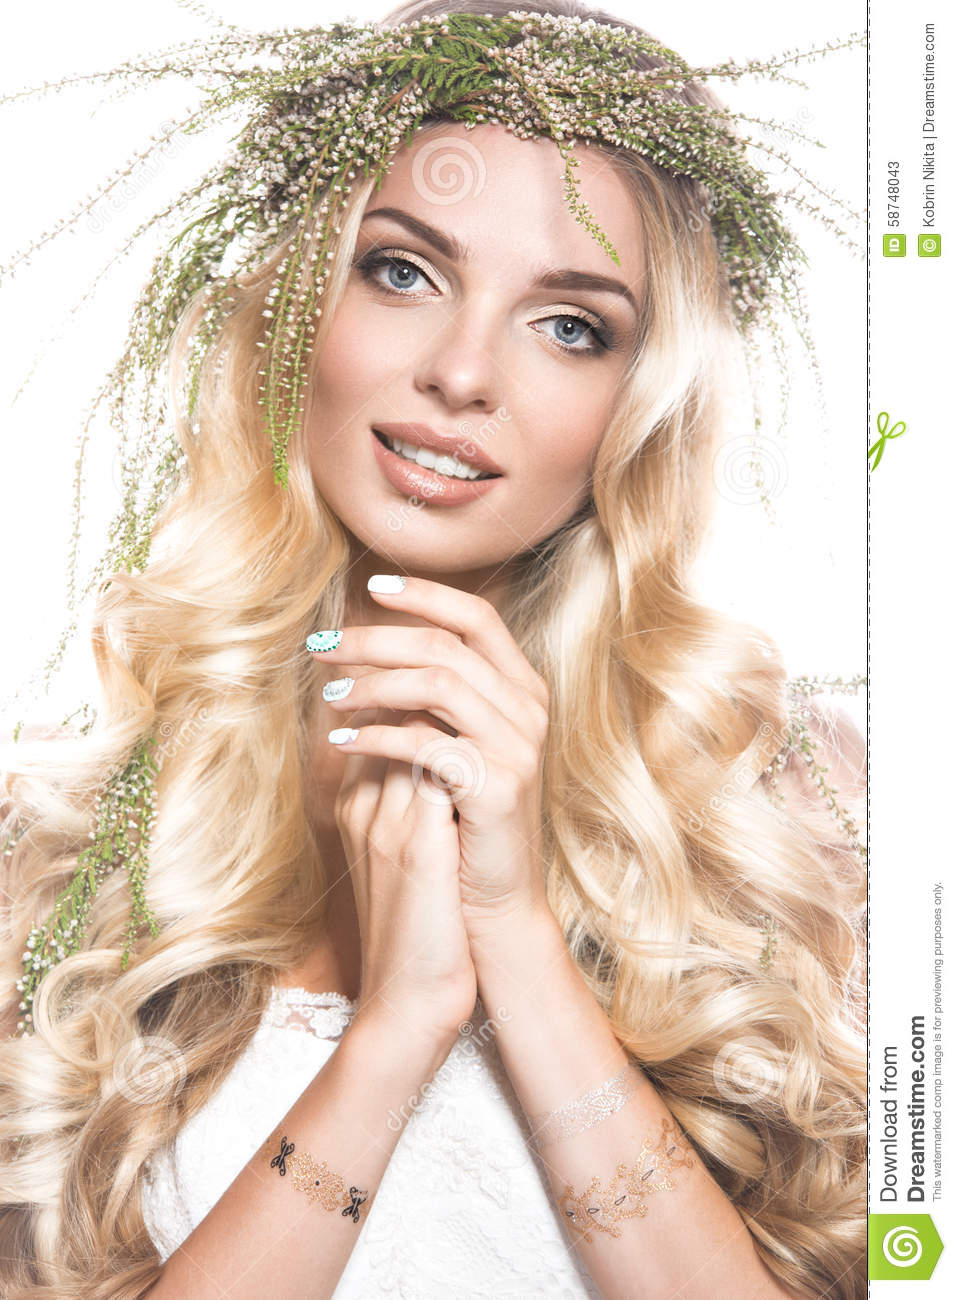 Portrait of a beautiful girl with flowers on her hair beauty face portrait of a beautiful girl with flowers on her hair beauty face wedding image in the style boho izmirmasajfo